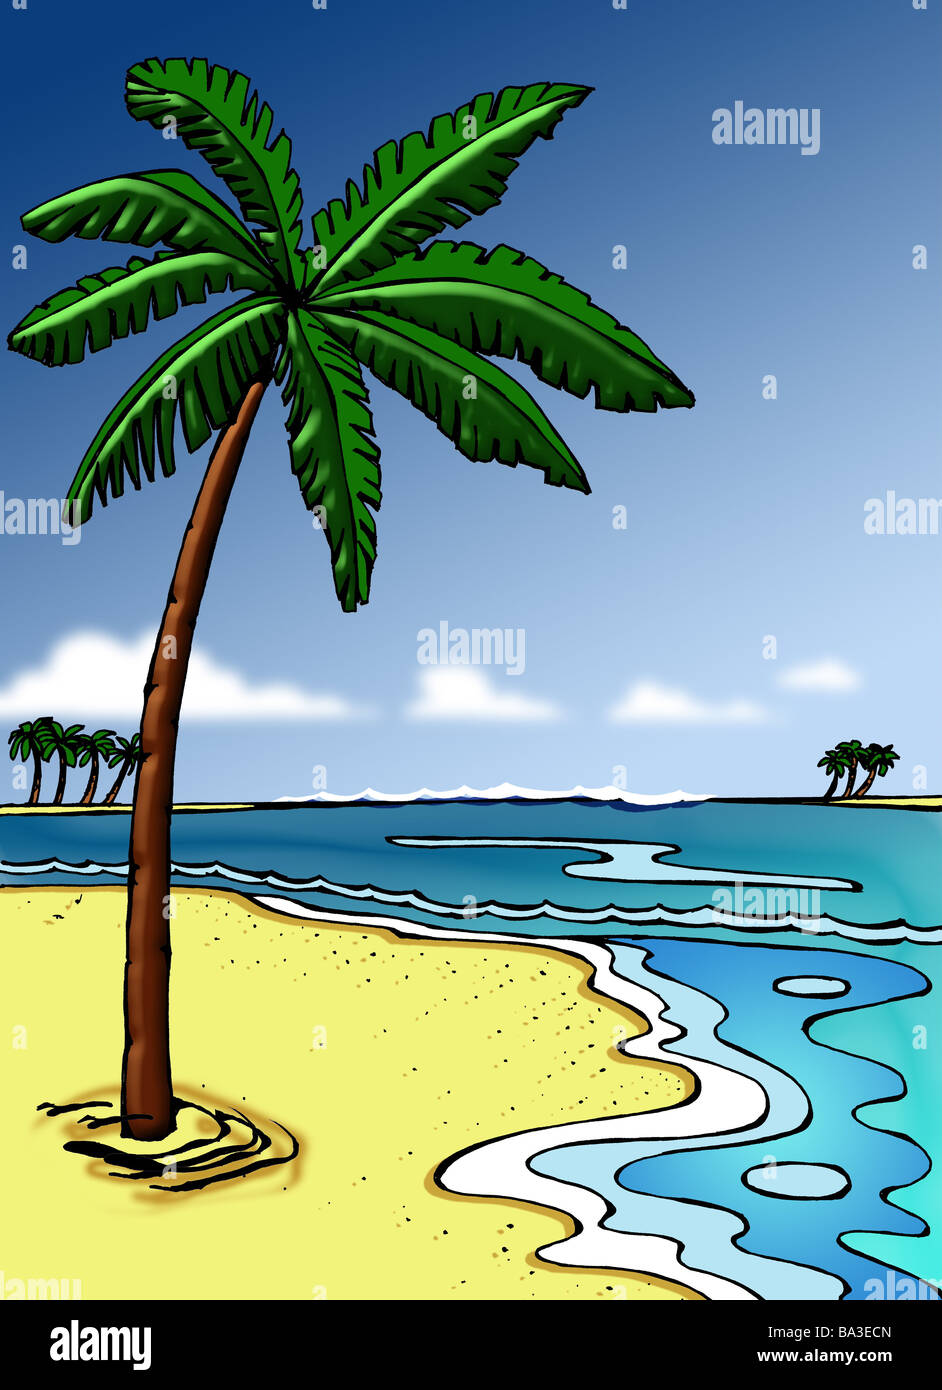 Illustration Palm Beach Islands Sea Graphics Drawing Watercolor Sandy Palms Neighbor Human Empty Untouched